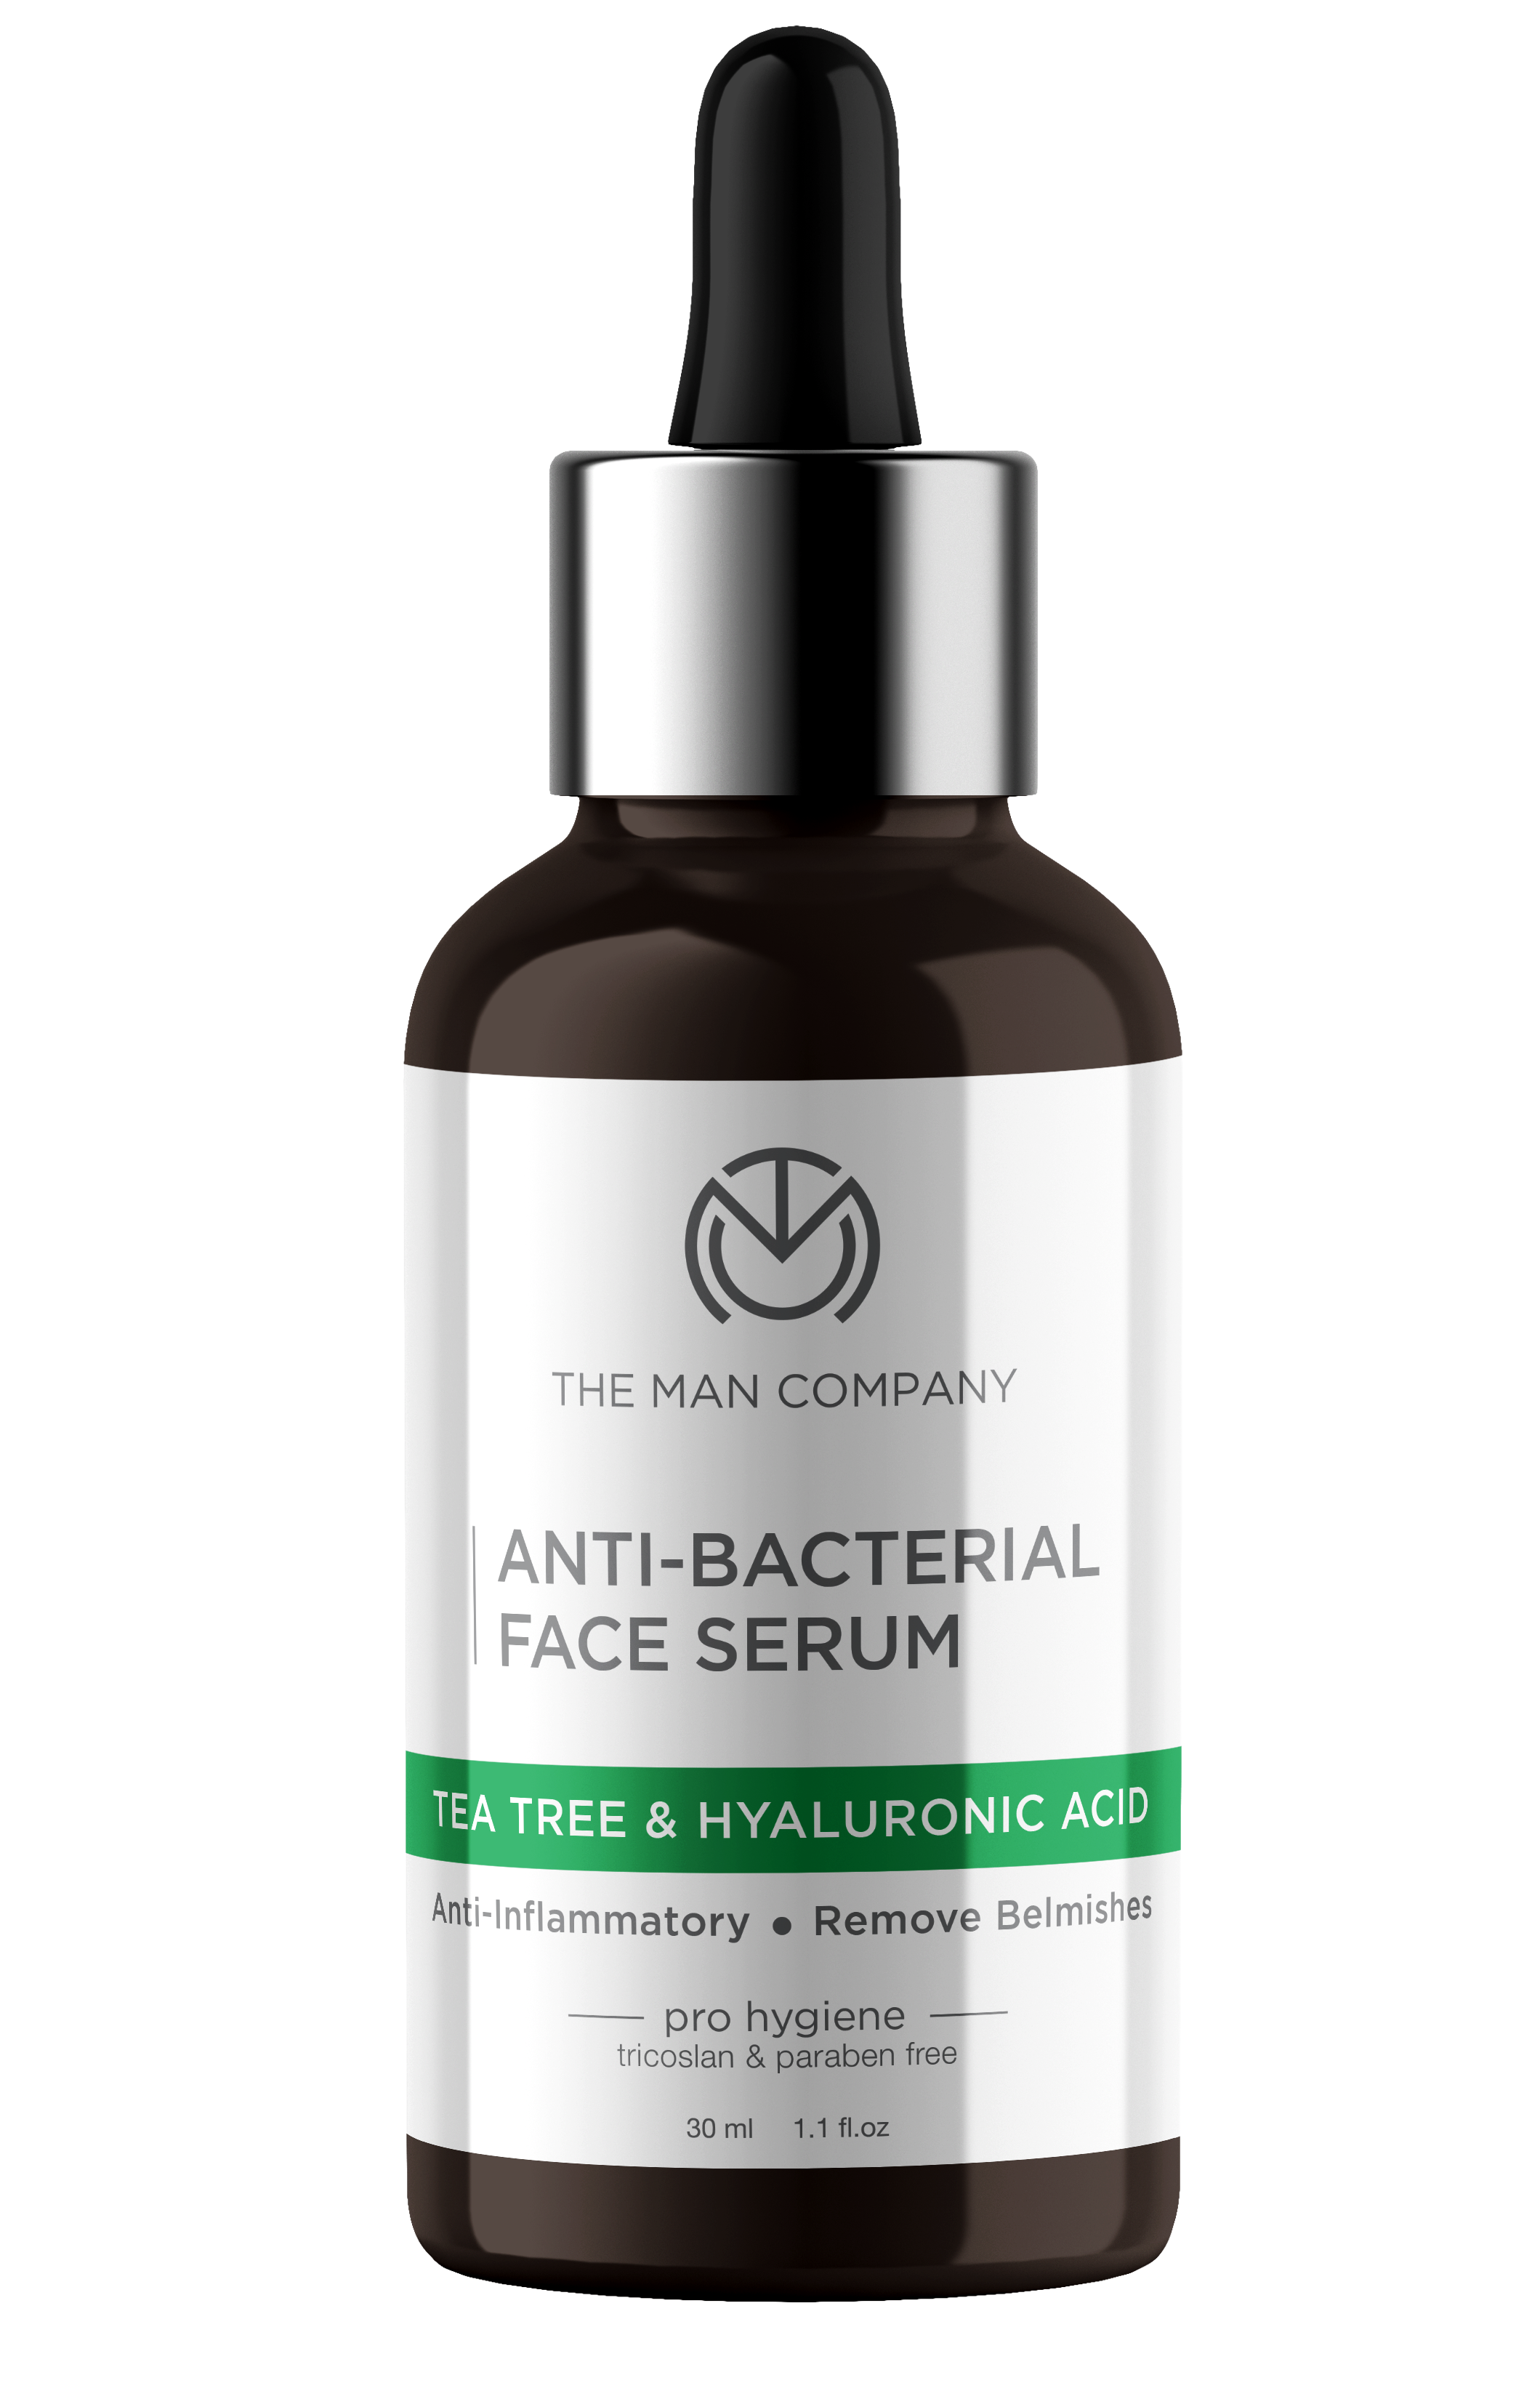 Anti-Bacterial Face Serum | Tea Tree & Hyaluronic Acid - 30 ml